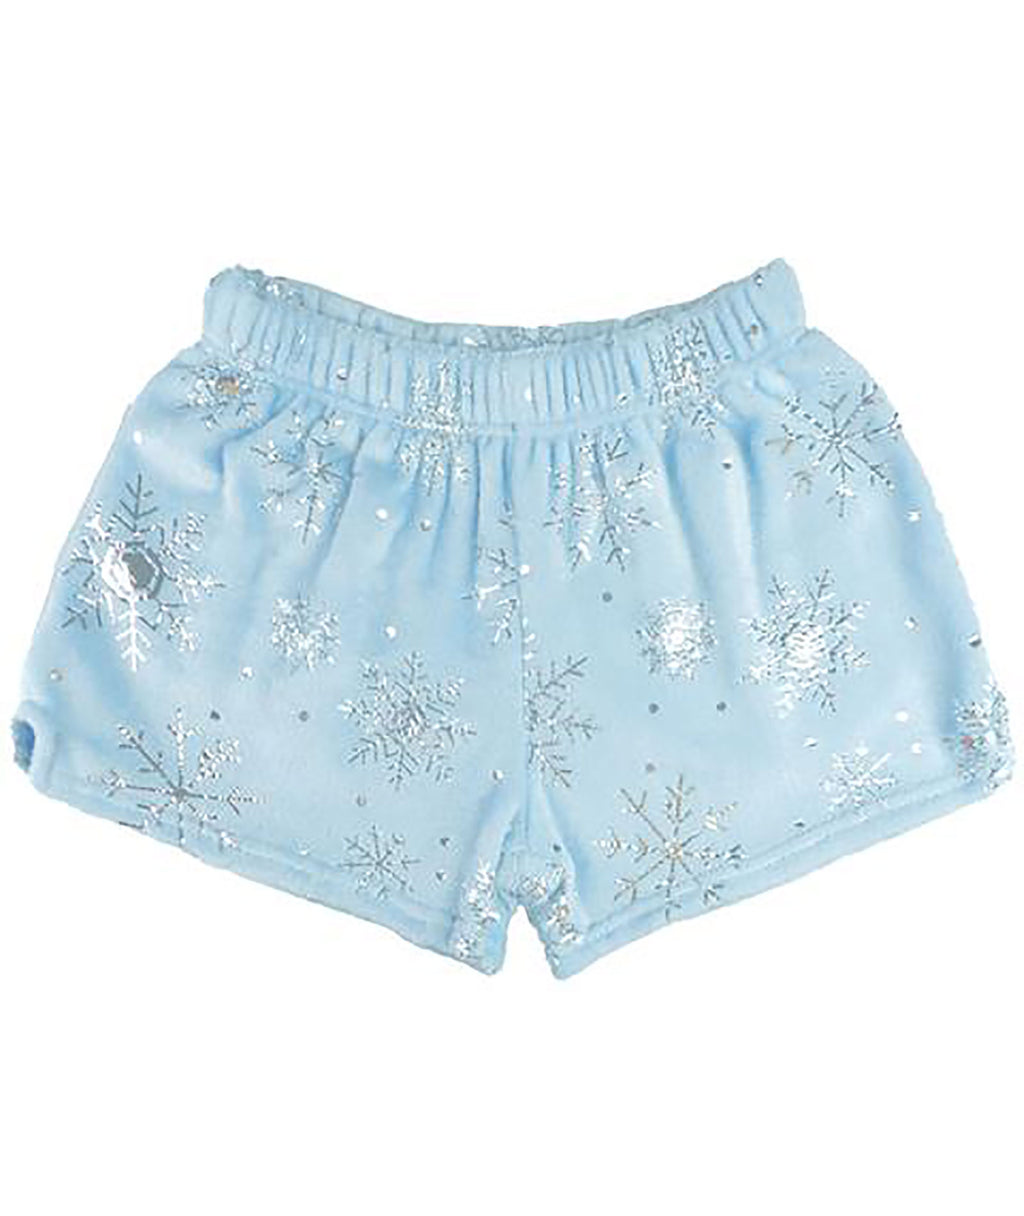 iScream Girls Snowflakes PJ Shorts